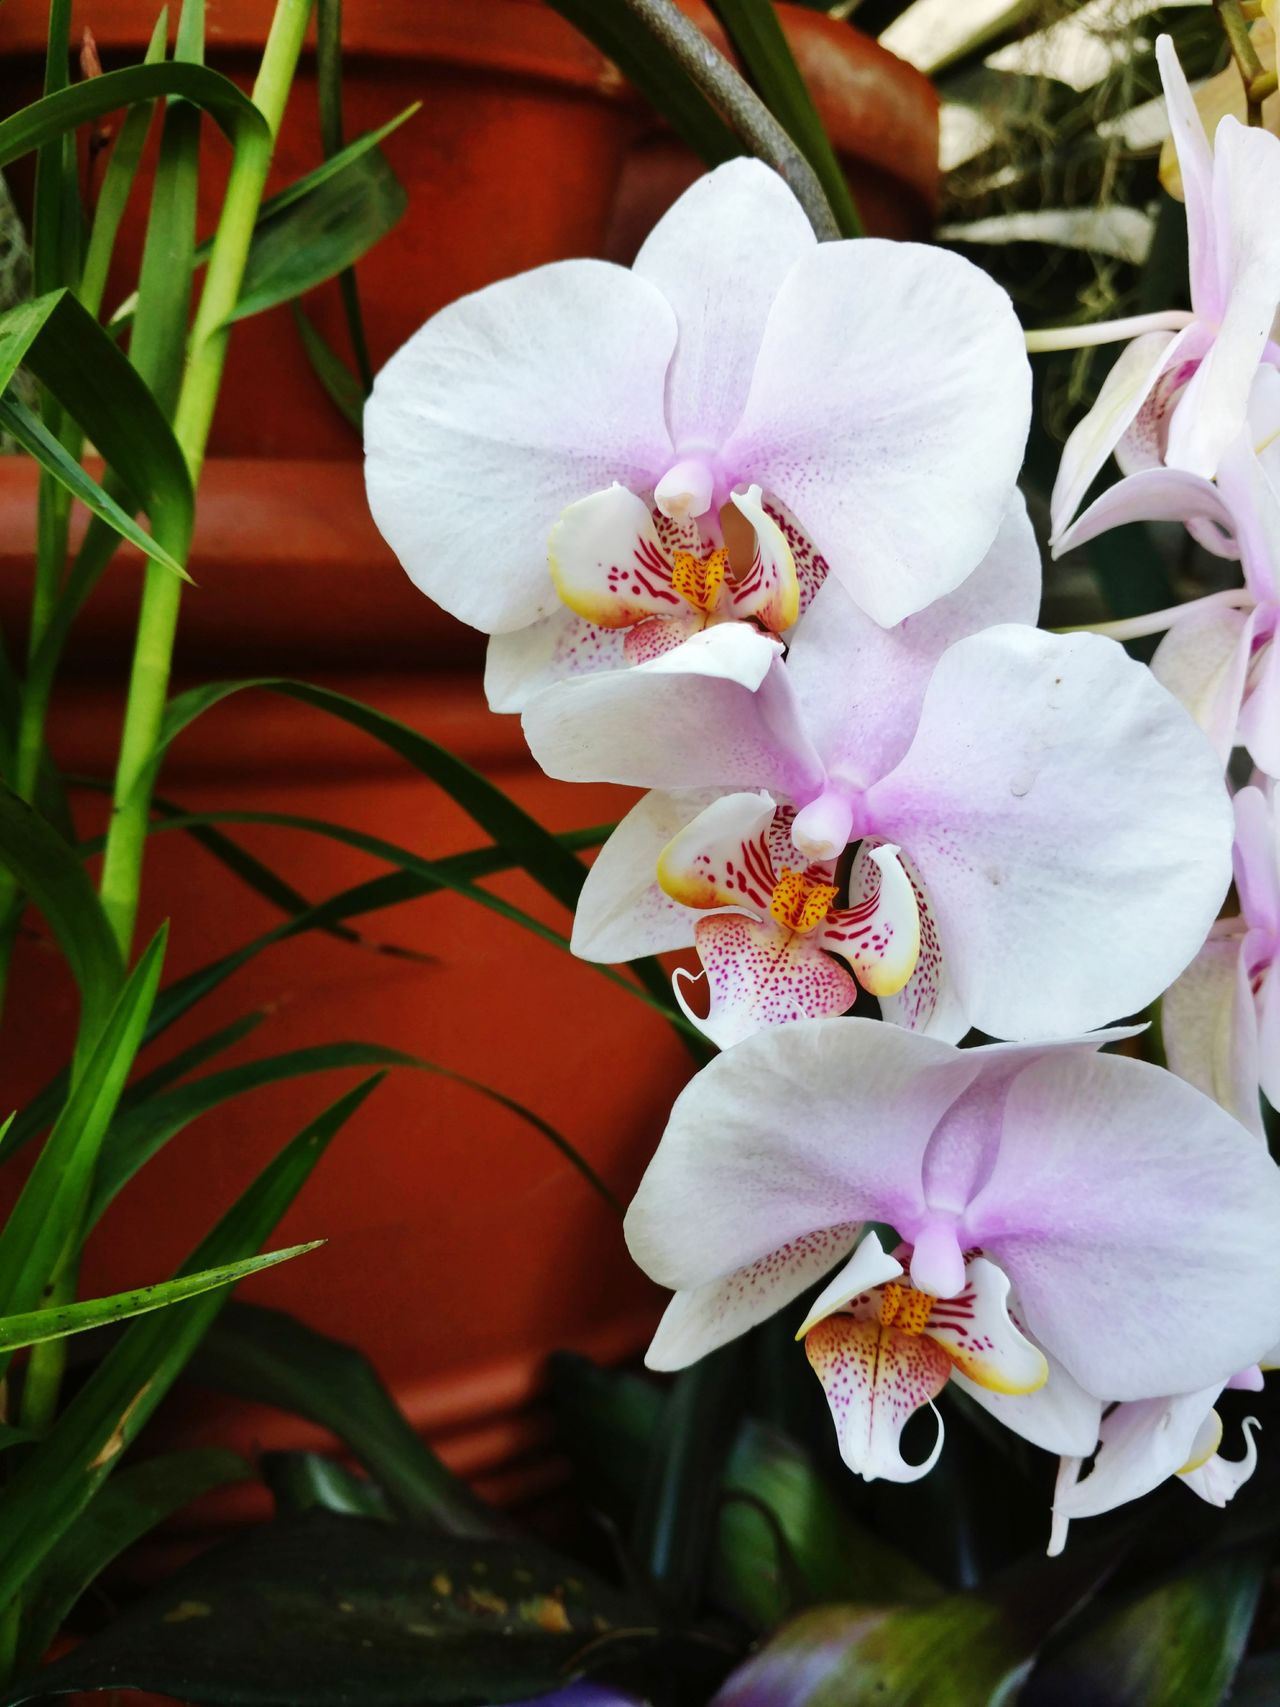 Triple Orchids! Three White Orchids Terracotta Pots Greenery Gorgeous Plants Beauty In Nature Freshness Pure Enjoyment Growth Love Flowers🌷💕 EyeEm Gallery EyeEm Love Flowers 💐 Cell Phone Photography